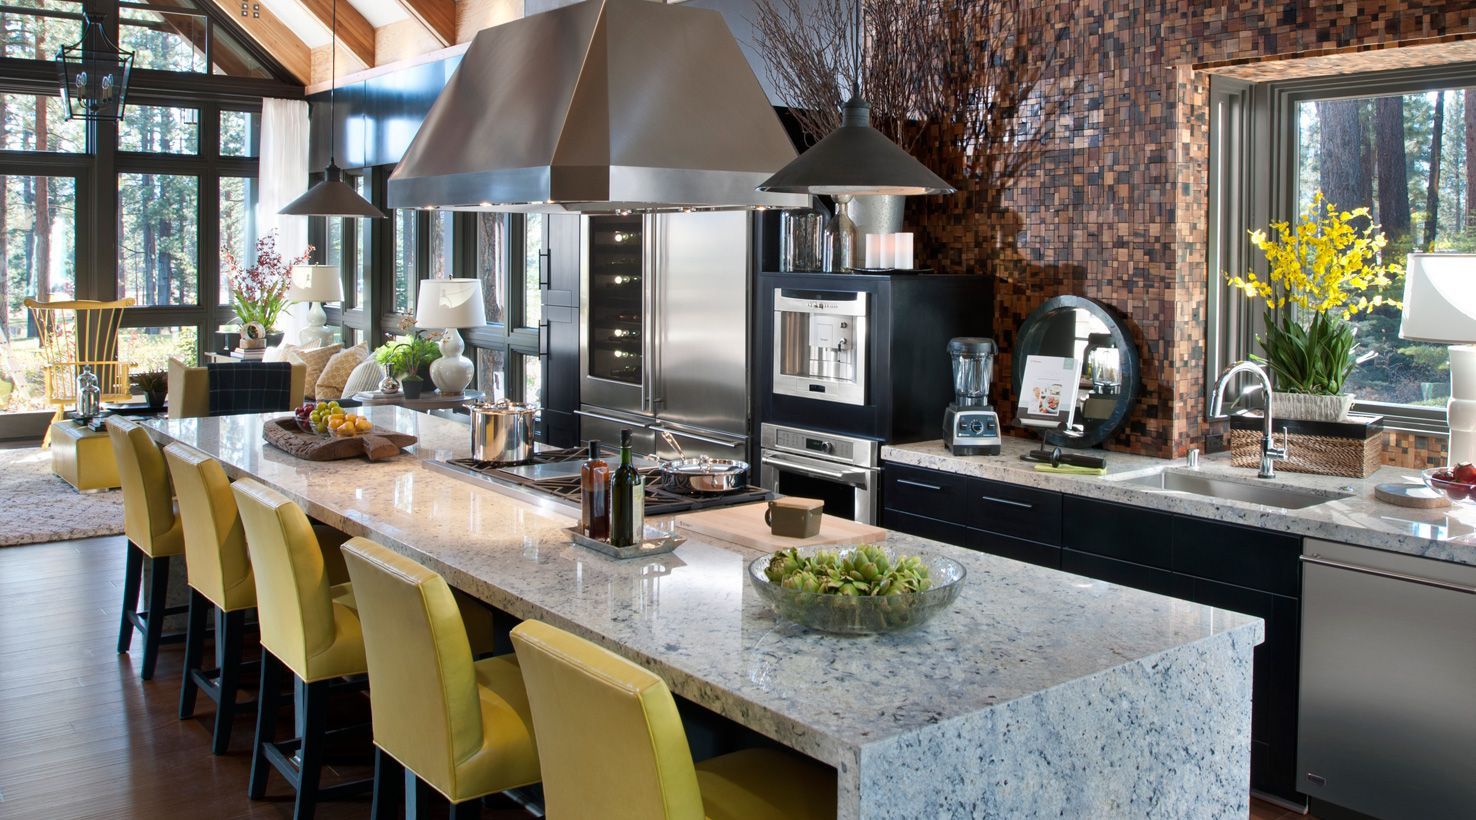 Uncategorized Hgtv Dream Kitchen Designs kitchen island vert hardwood flooring by lumber liquidators with serving space for a crowd this in the 2014 hgtv dream home is clad waterfall style durable granite on sid